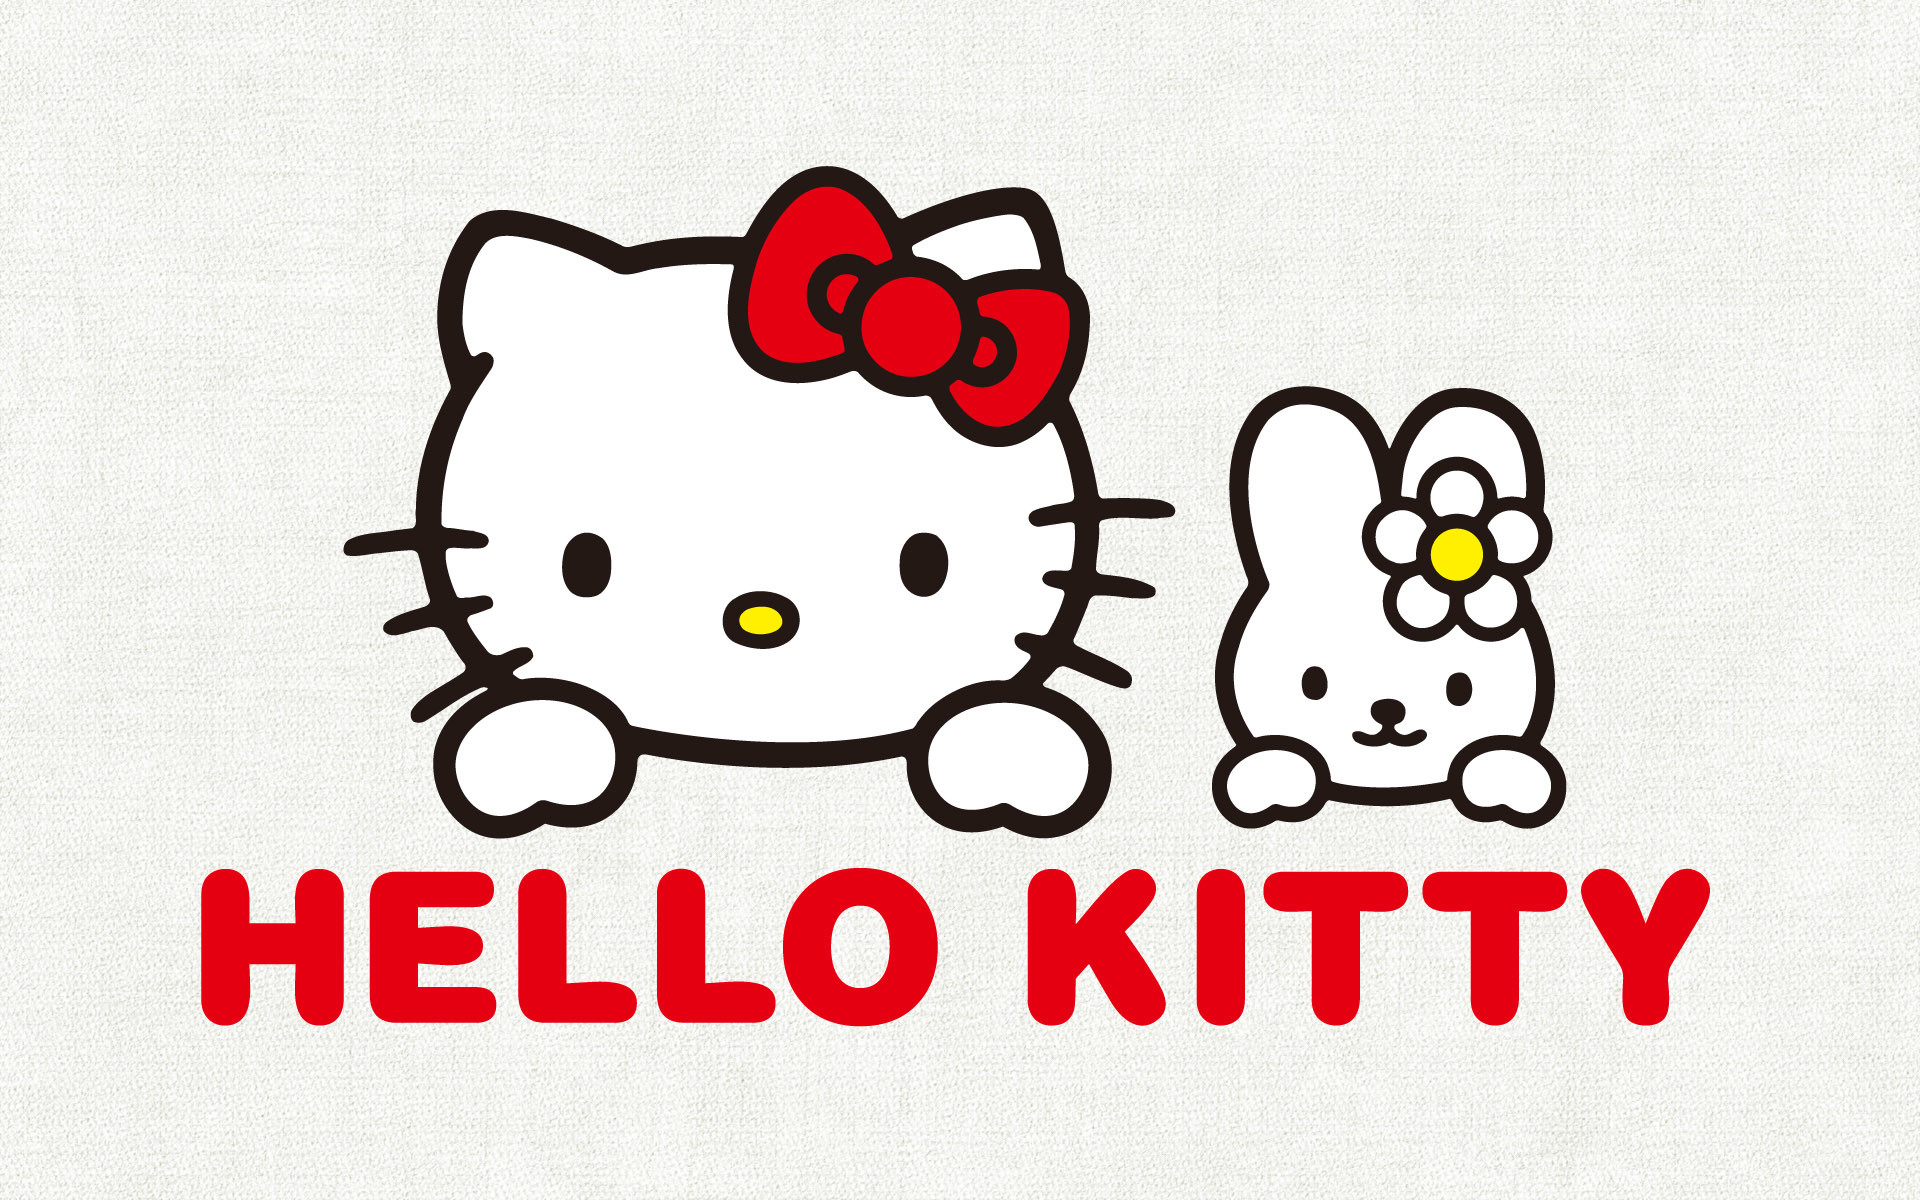 1920x1200 Download nice and cute Hello Kitty wallpaper for computer. Geeglenews.com  we introduce hello kitty computer wallpaper super cute and fun, lovely.